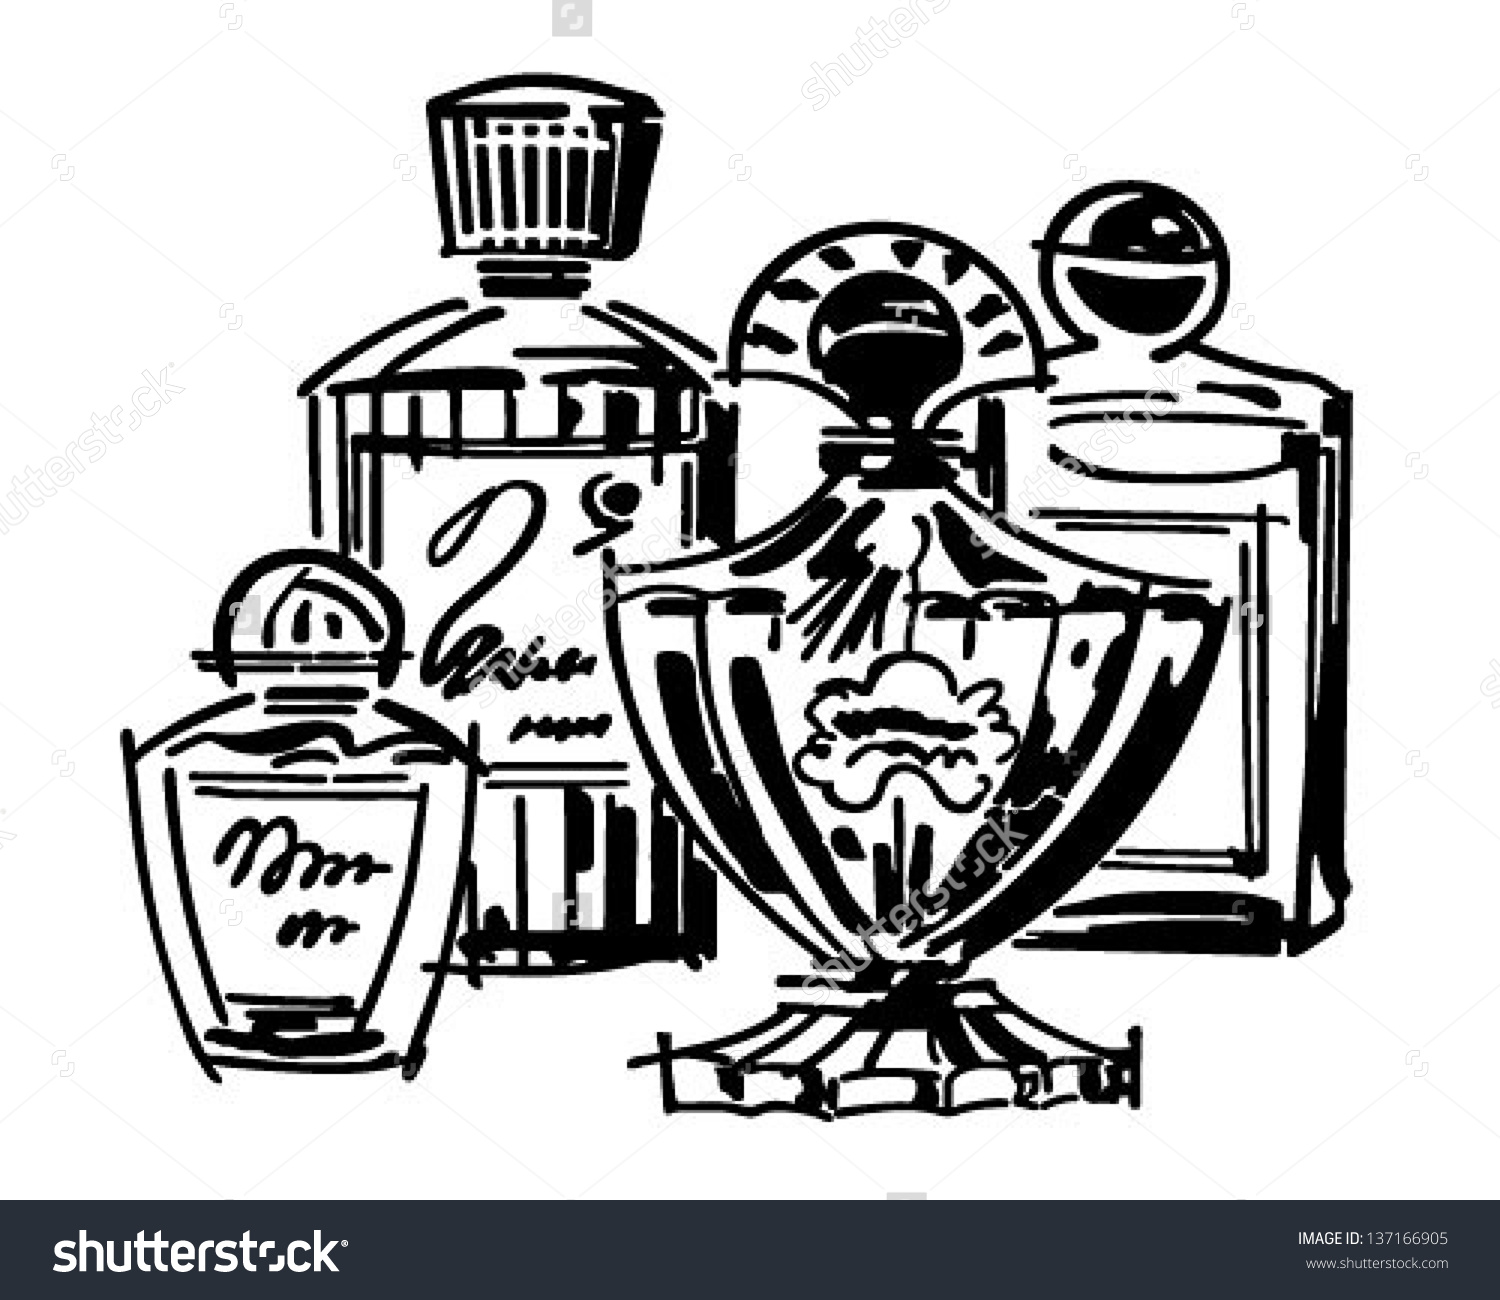 Perfume clipart #2, Download drawings